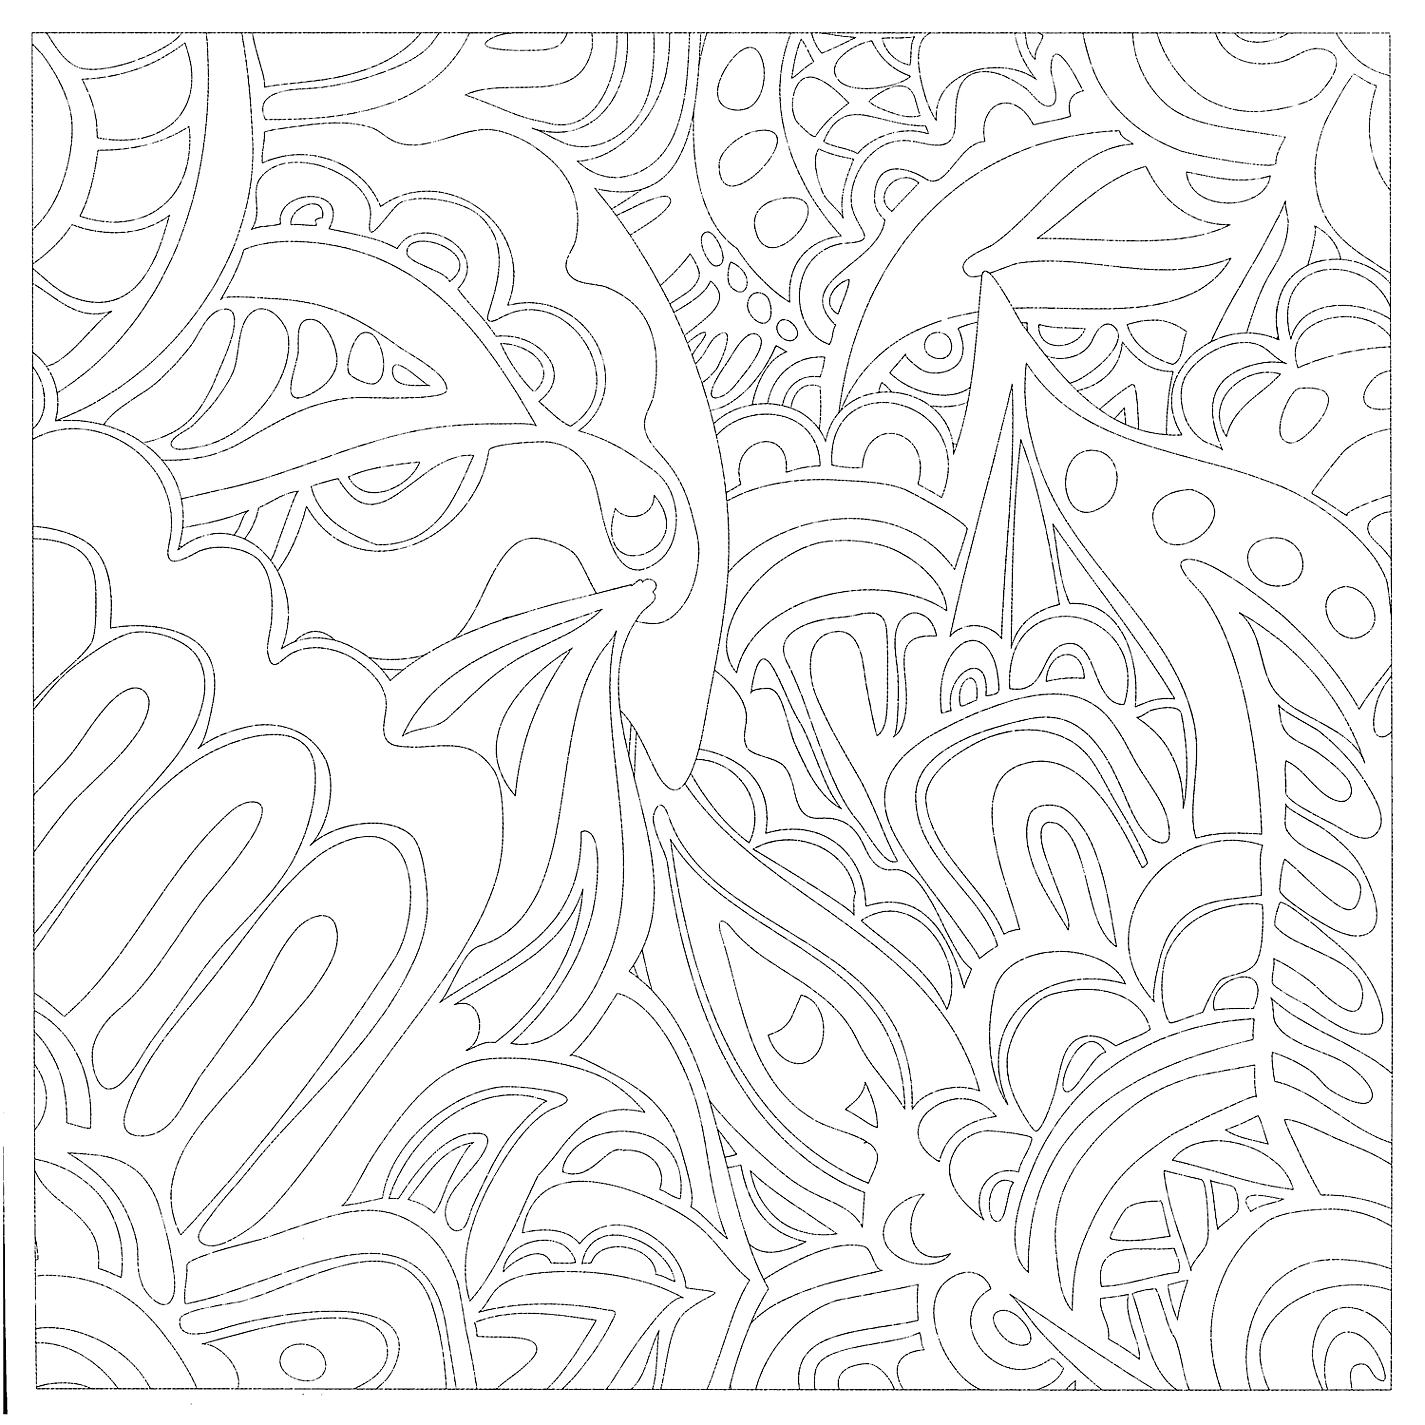 Anti stress colouring book asda - Serenity Colouring Book With Coloured Pencils Online At Johnlewis Com